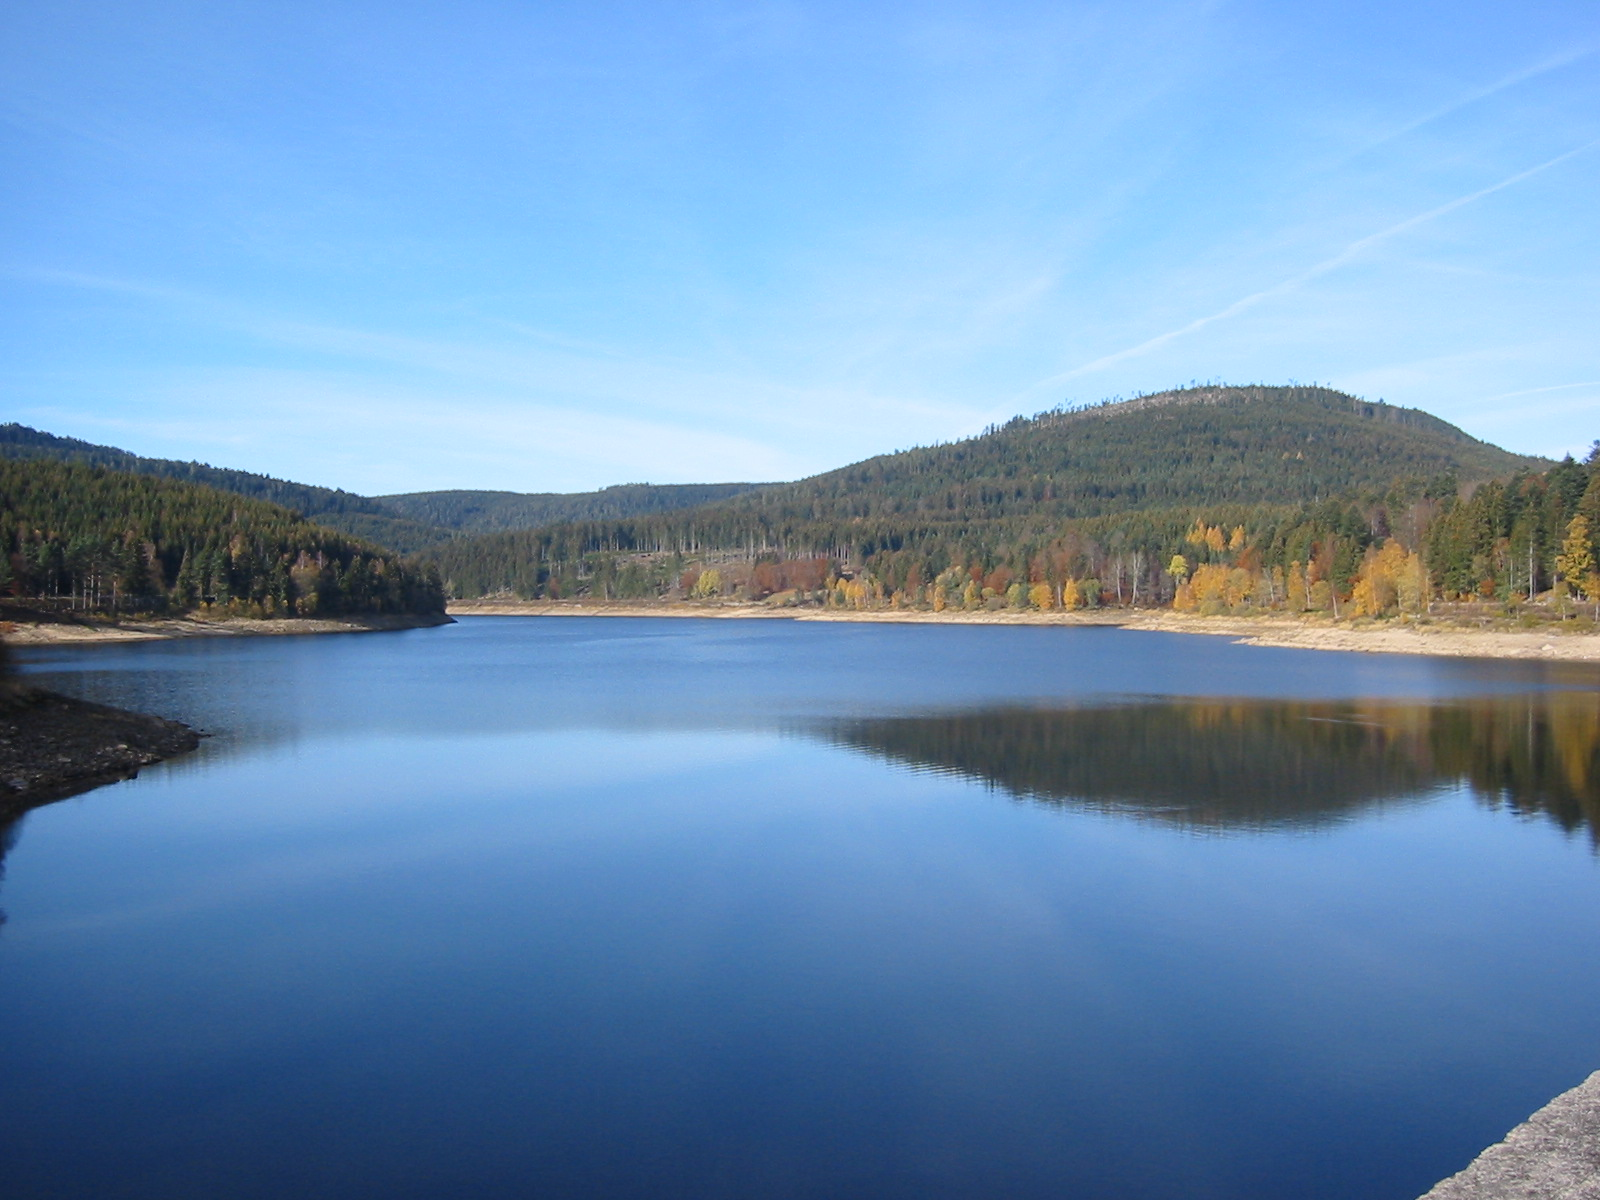 stausee_1